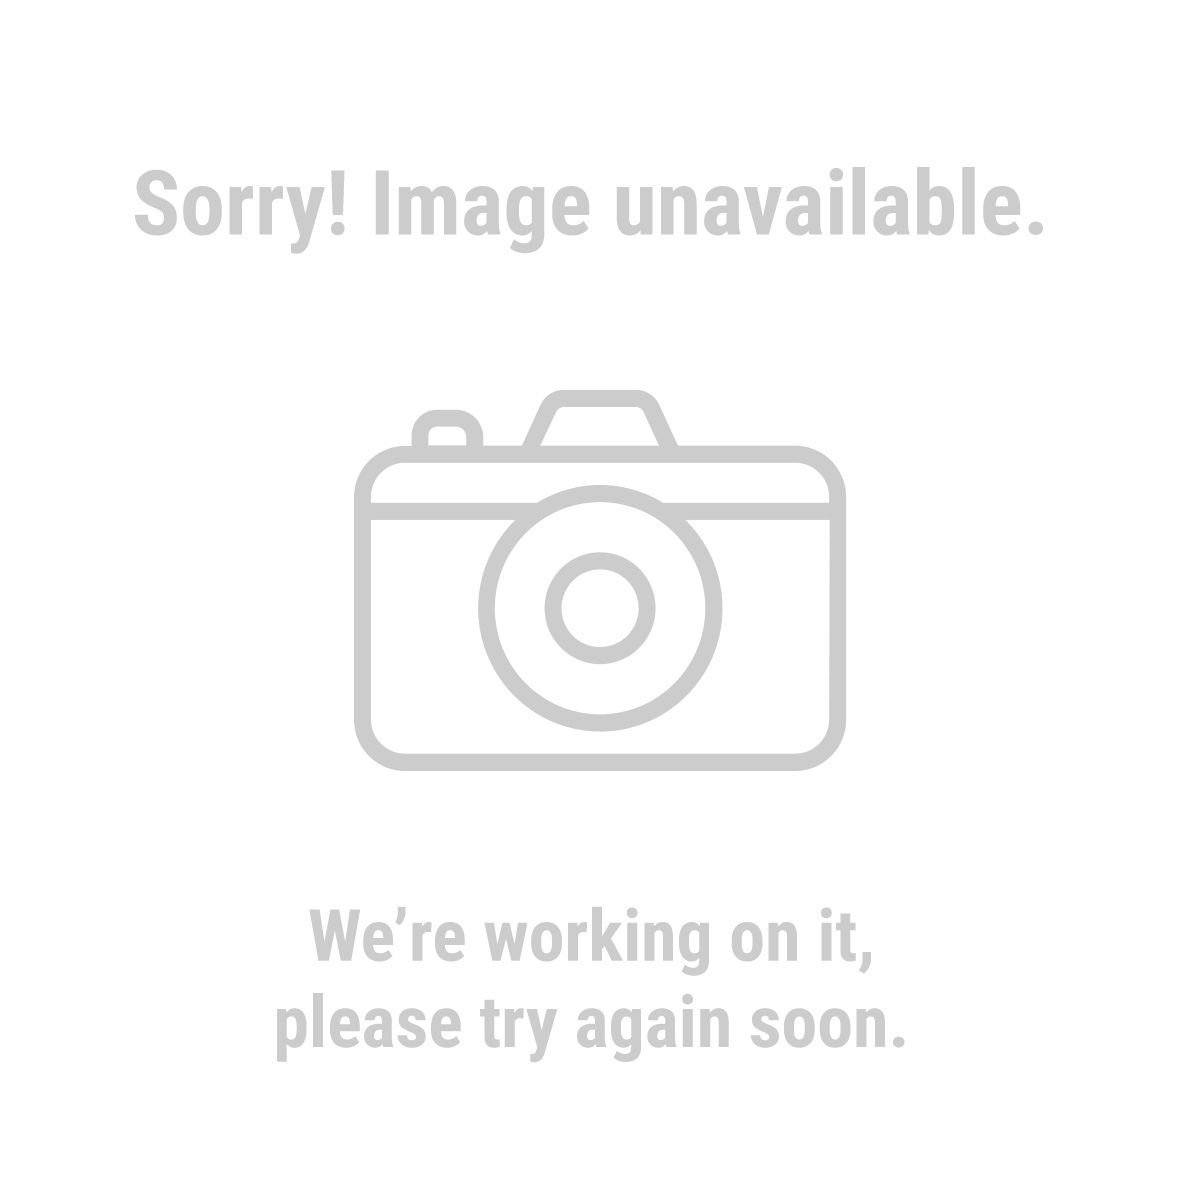 Pittsburgh Automotive 60347 880 Lb. Electric Hoist with Remote Control